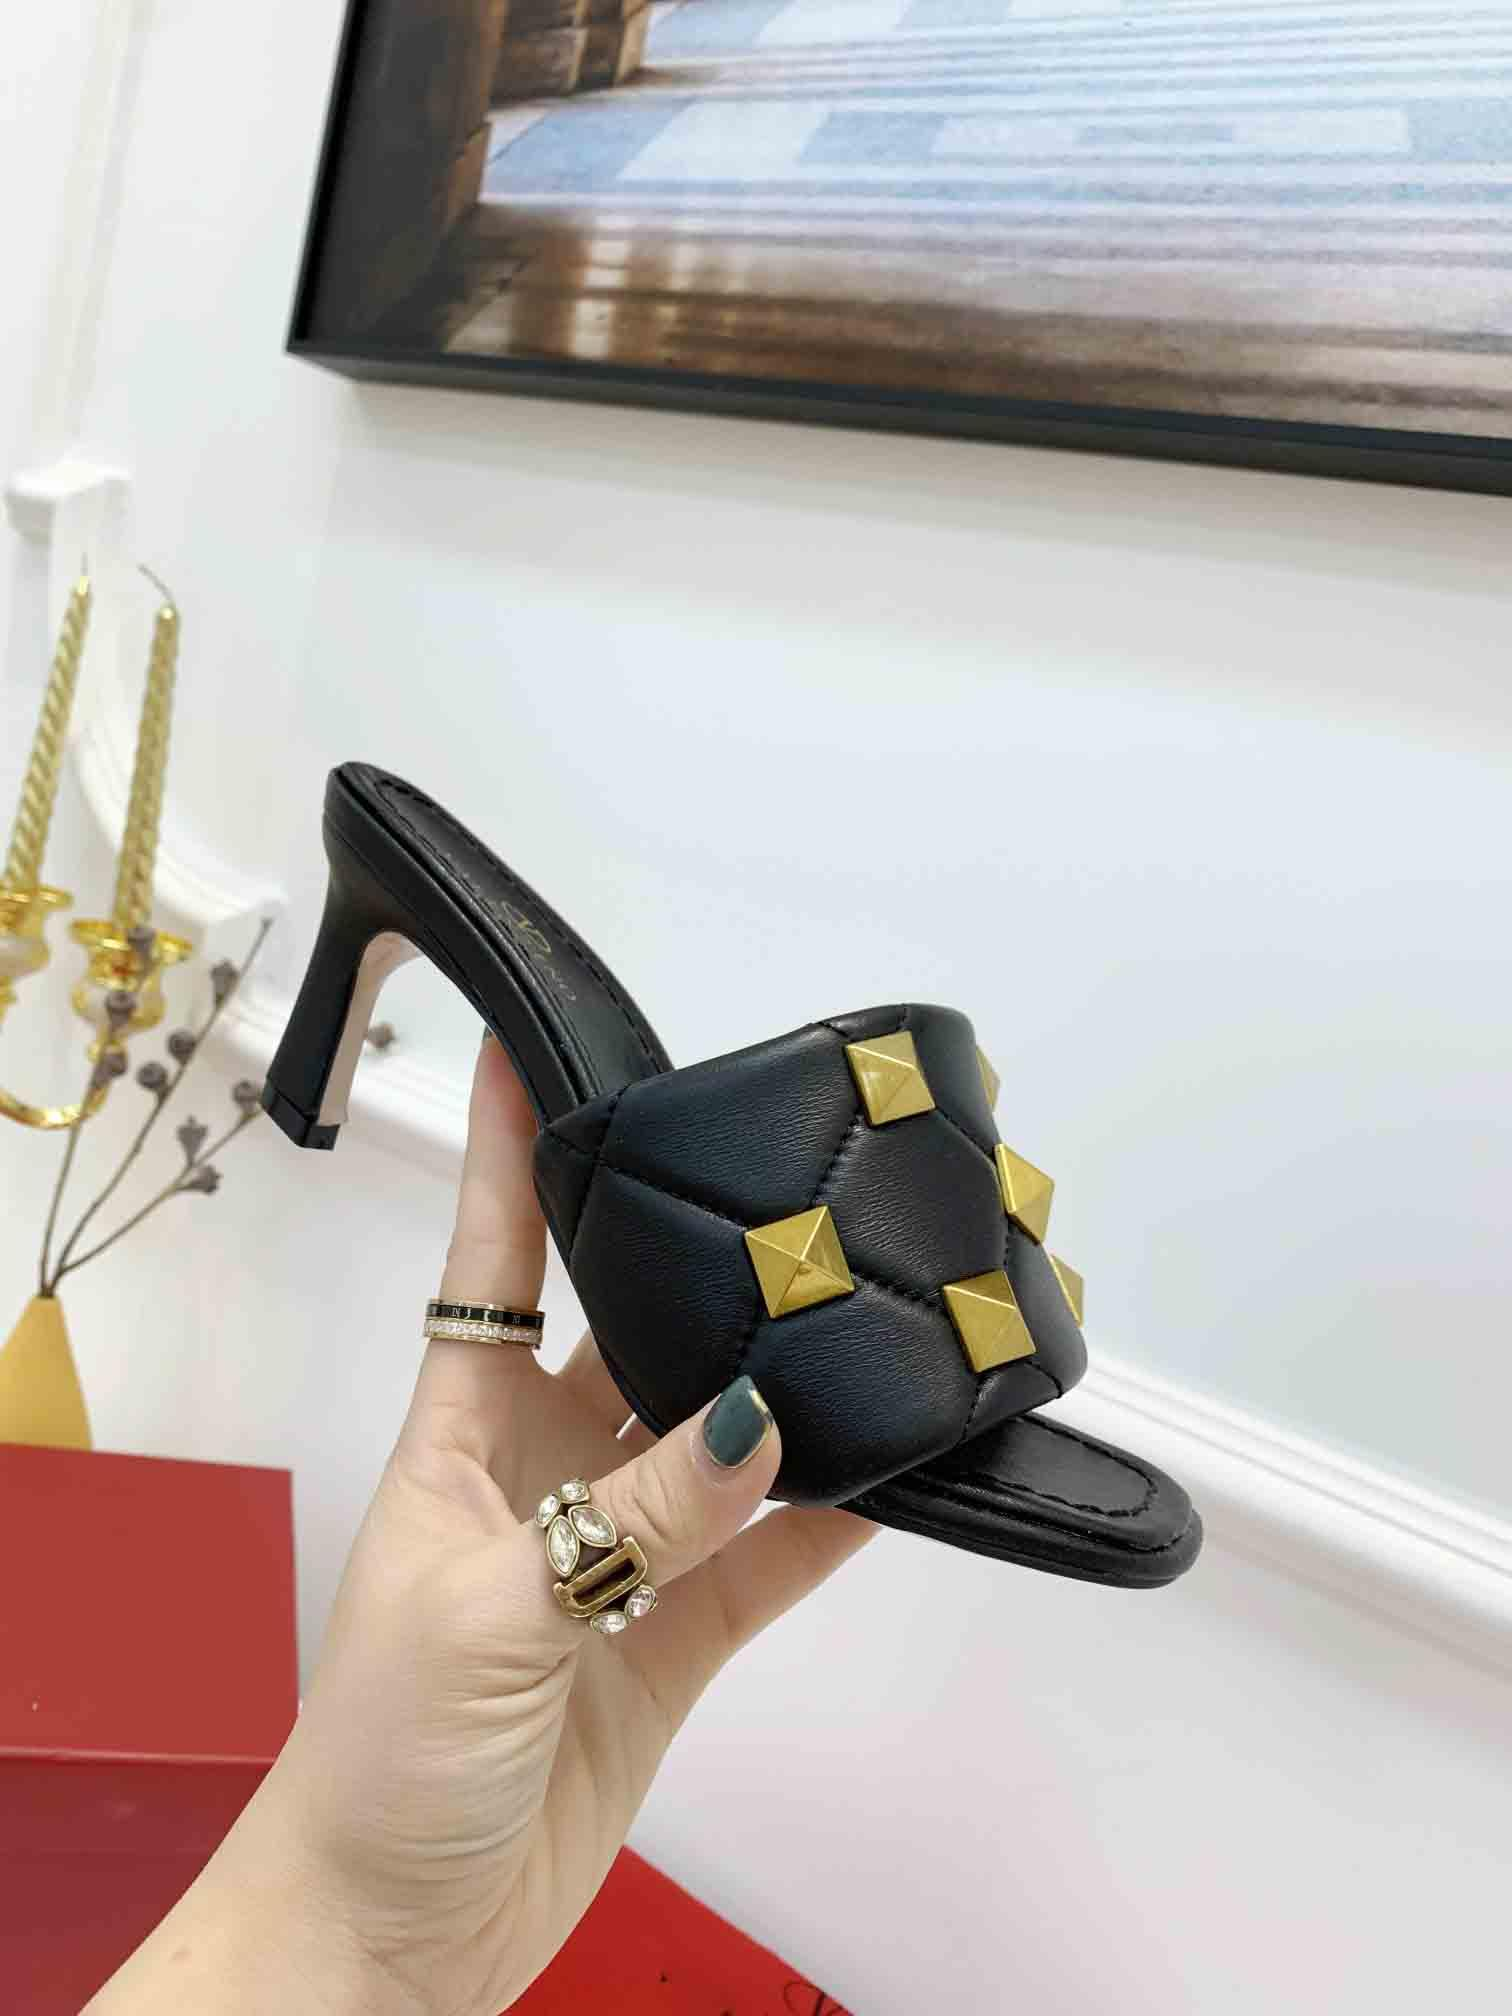 2021 New summer DESIGNER high heel SANDALS good quality luxury rivet sandals Designer Flat slippers big size 35-42 leather slippers with box